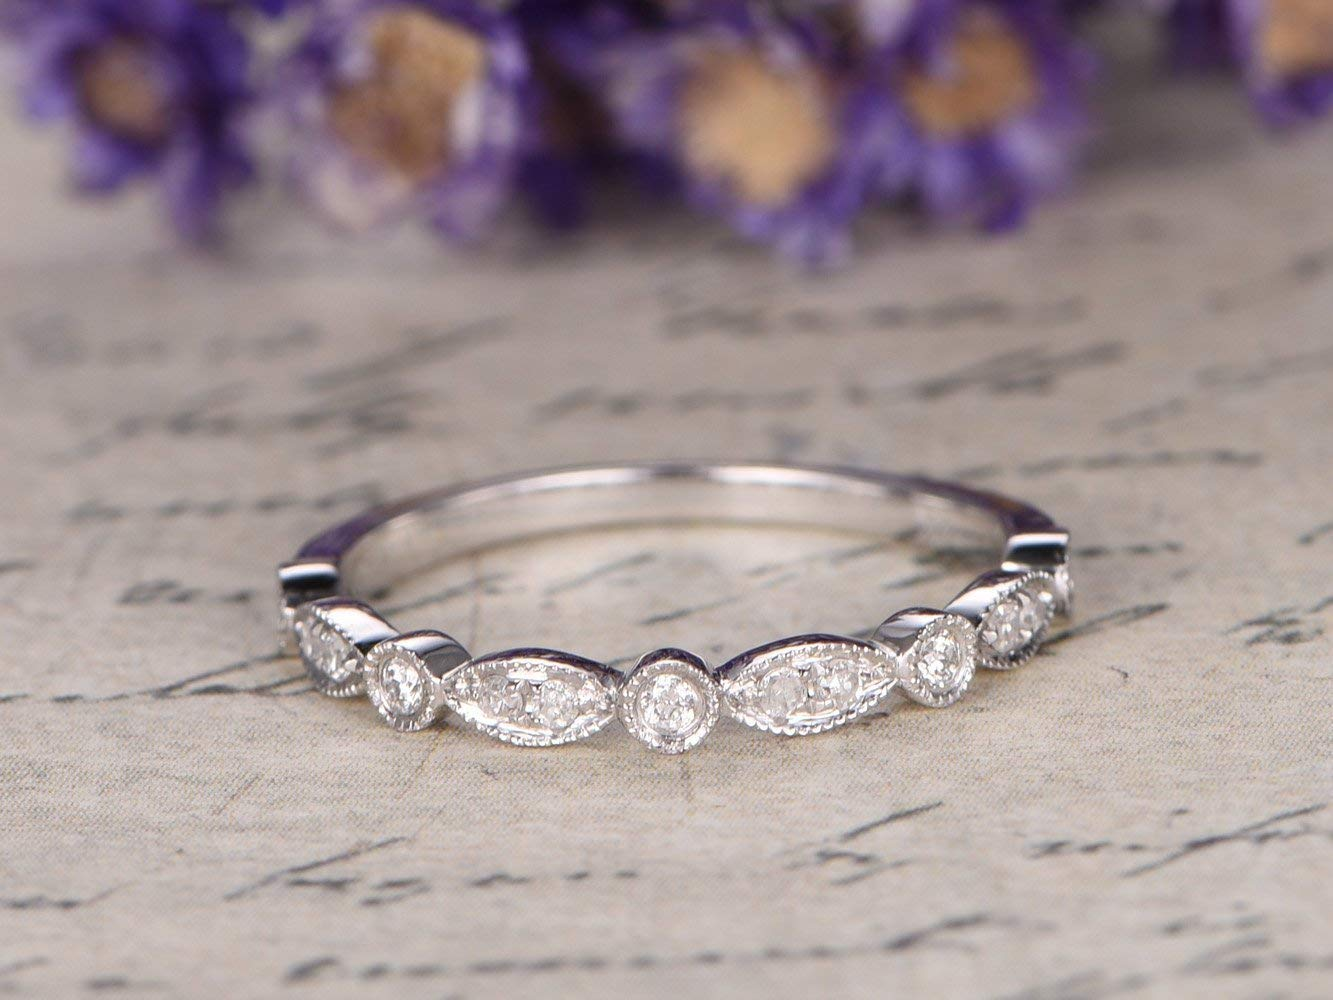 Amethyst Emerald Silver 14k White gold Wedding Band Half Eternity Marquise Women Stackable Matching Ring Birthstone Anniversary Gift